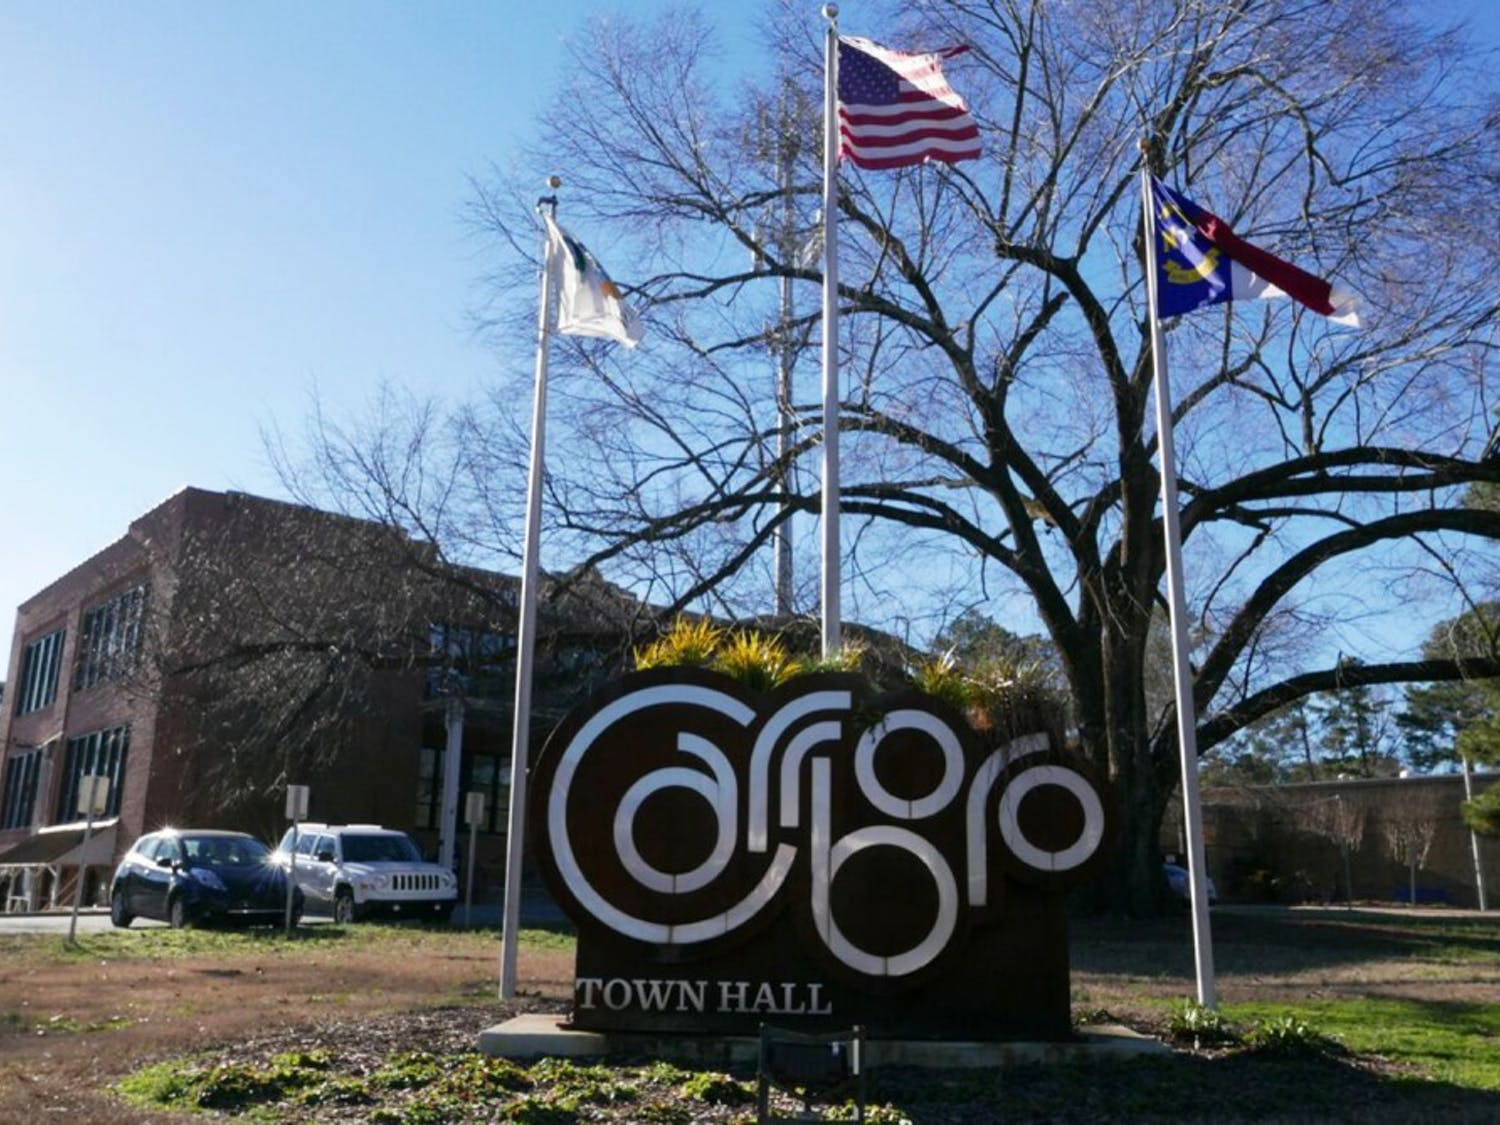 Earth Hour is an event in Carrboro encouraging residents to turn their lights off from 8:30-9:30 p.m. to promote conservation.